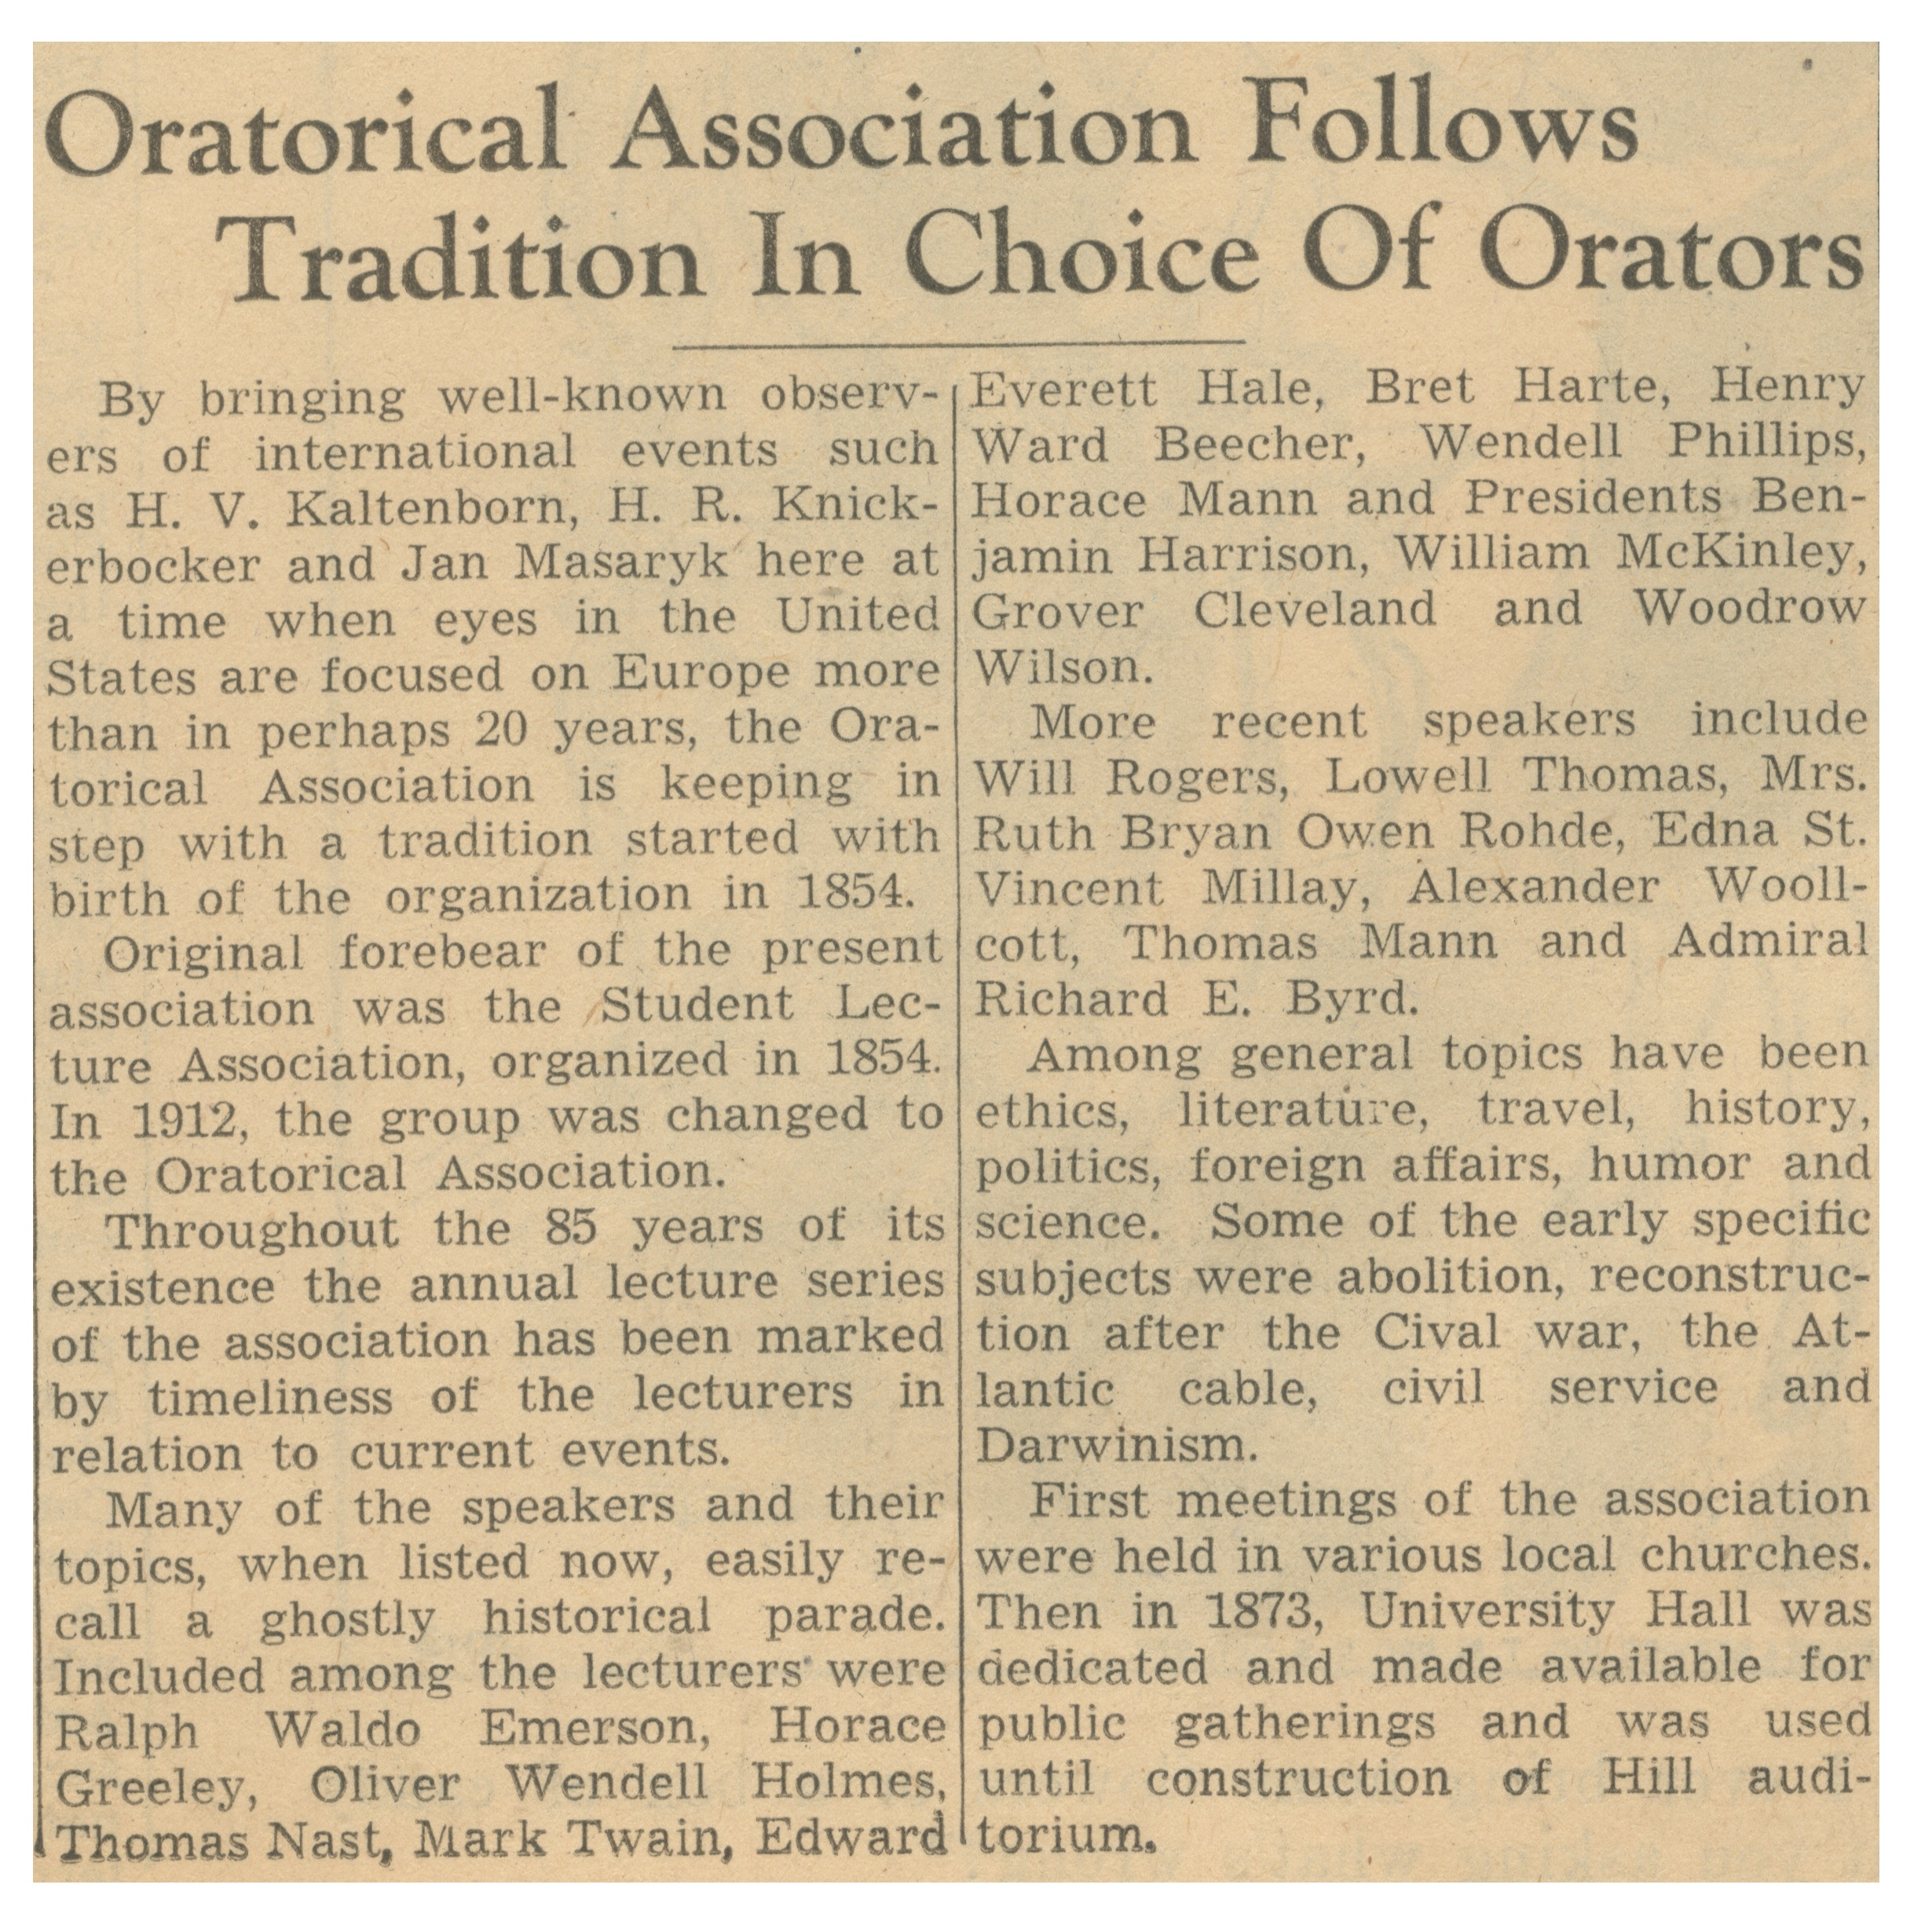 Oratorical Association Follows Tradition In Choice Of Orators image